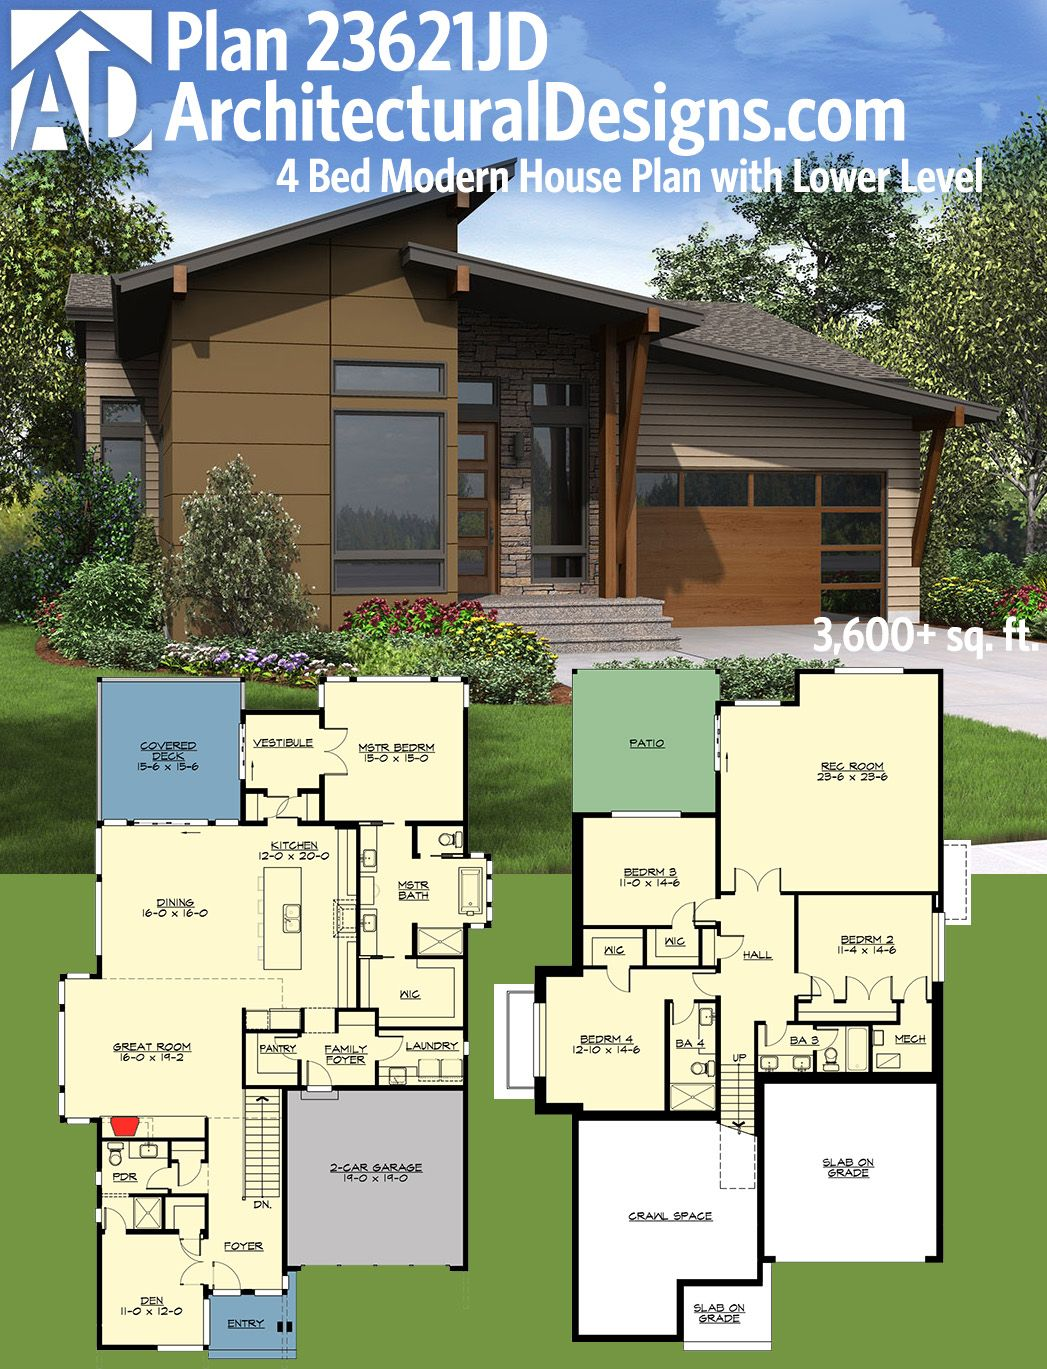 plan 23621jd  4 bed modern house plan with lower level